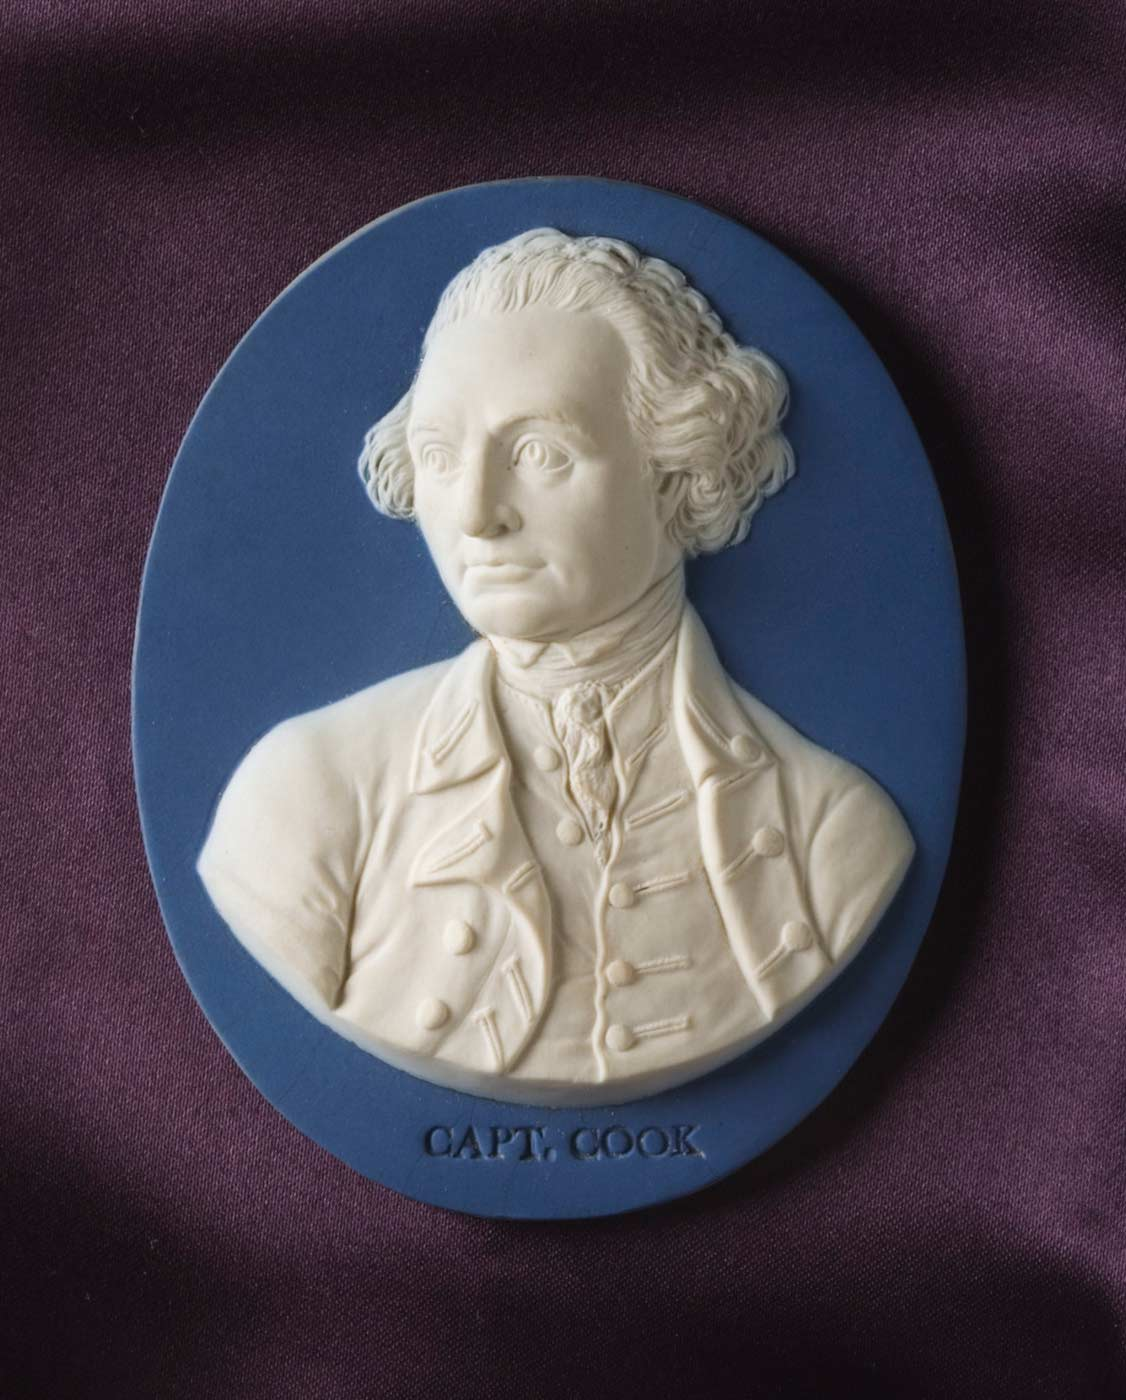 Oval pale blue jasper medallion with a darker blue dip and white jasper portrait of Captain Cook, which has a stamped impression below the portrait which reads 'CAPT. COOK'. - click to view larger image